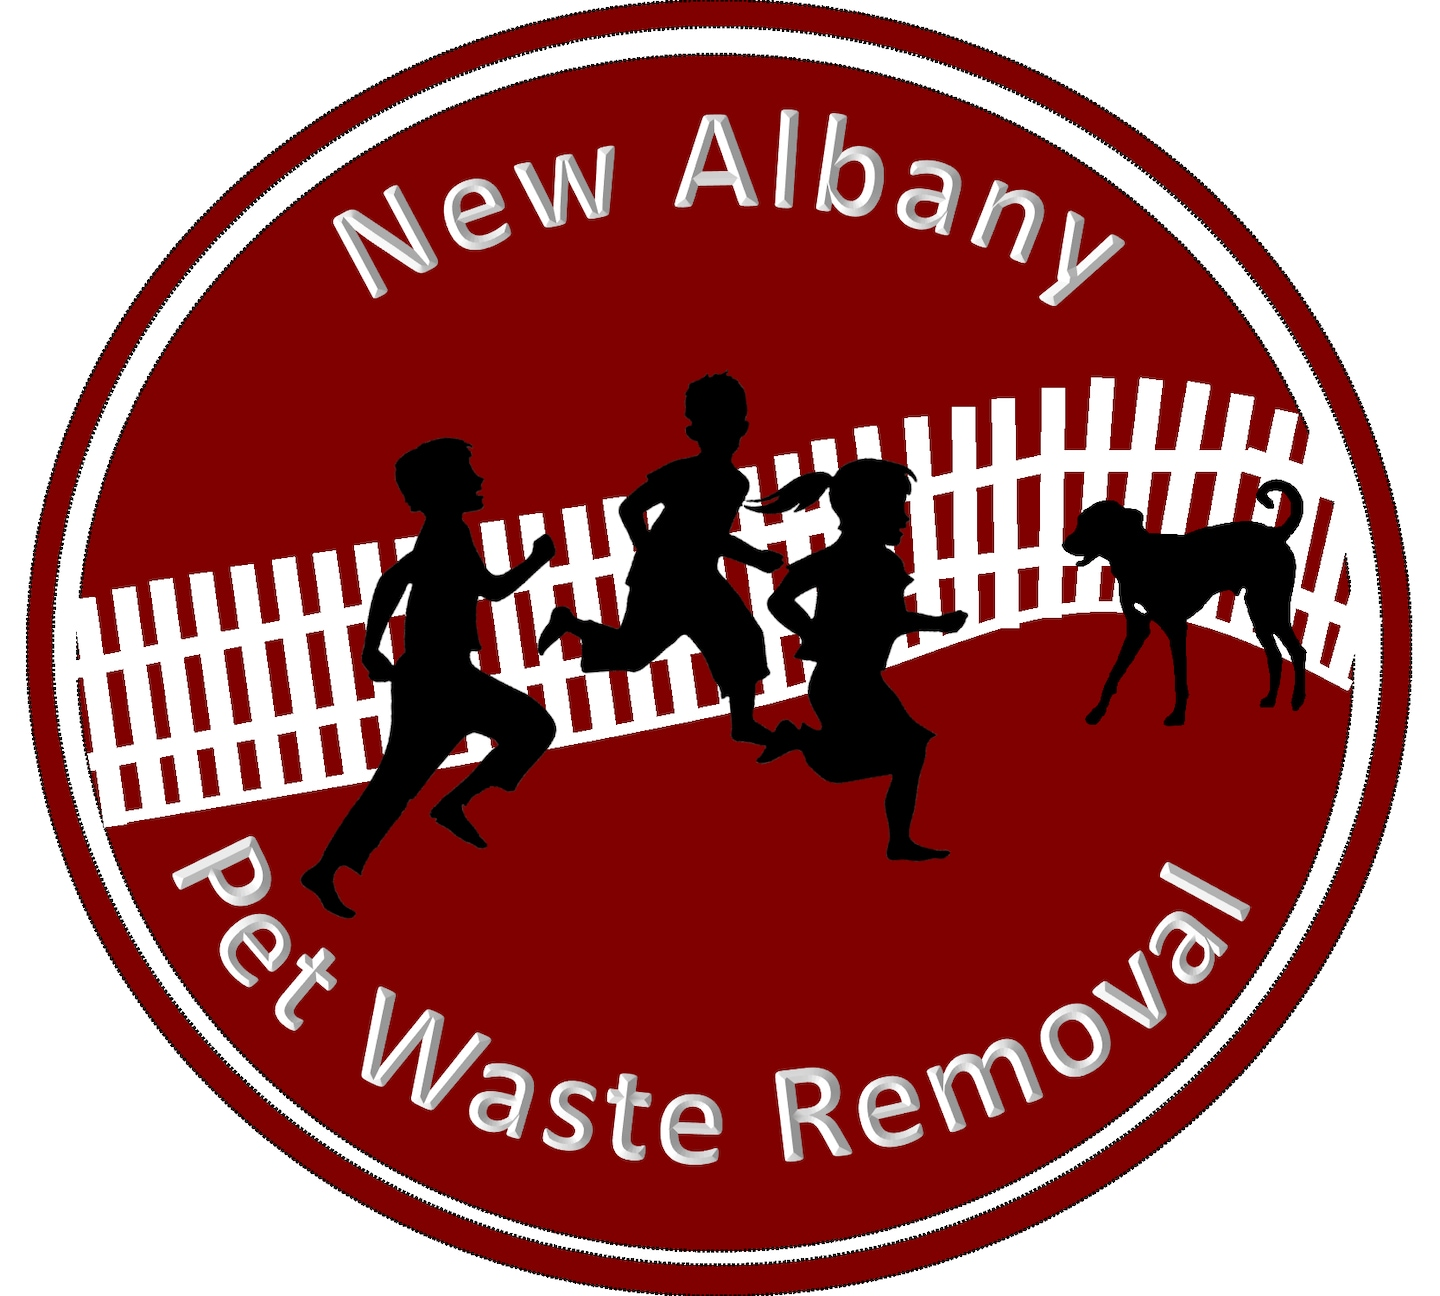 New Albany Pet Waste Removal